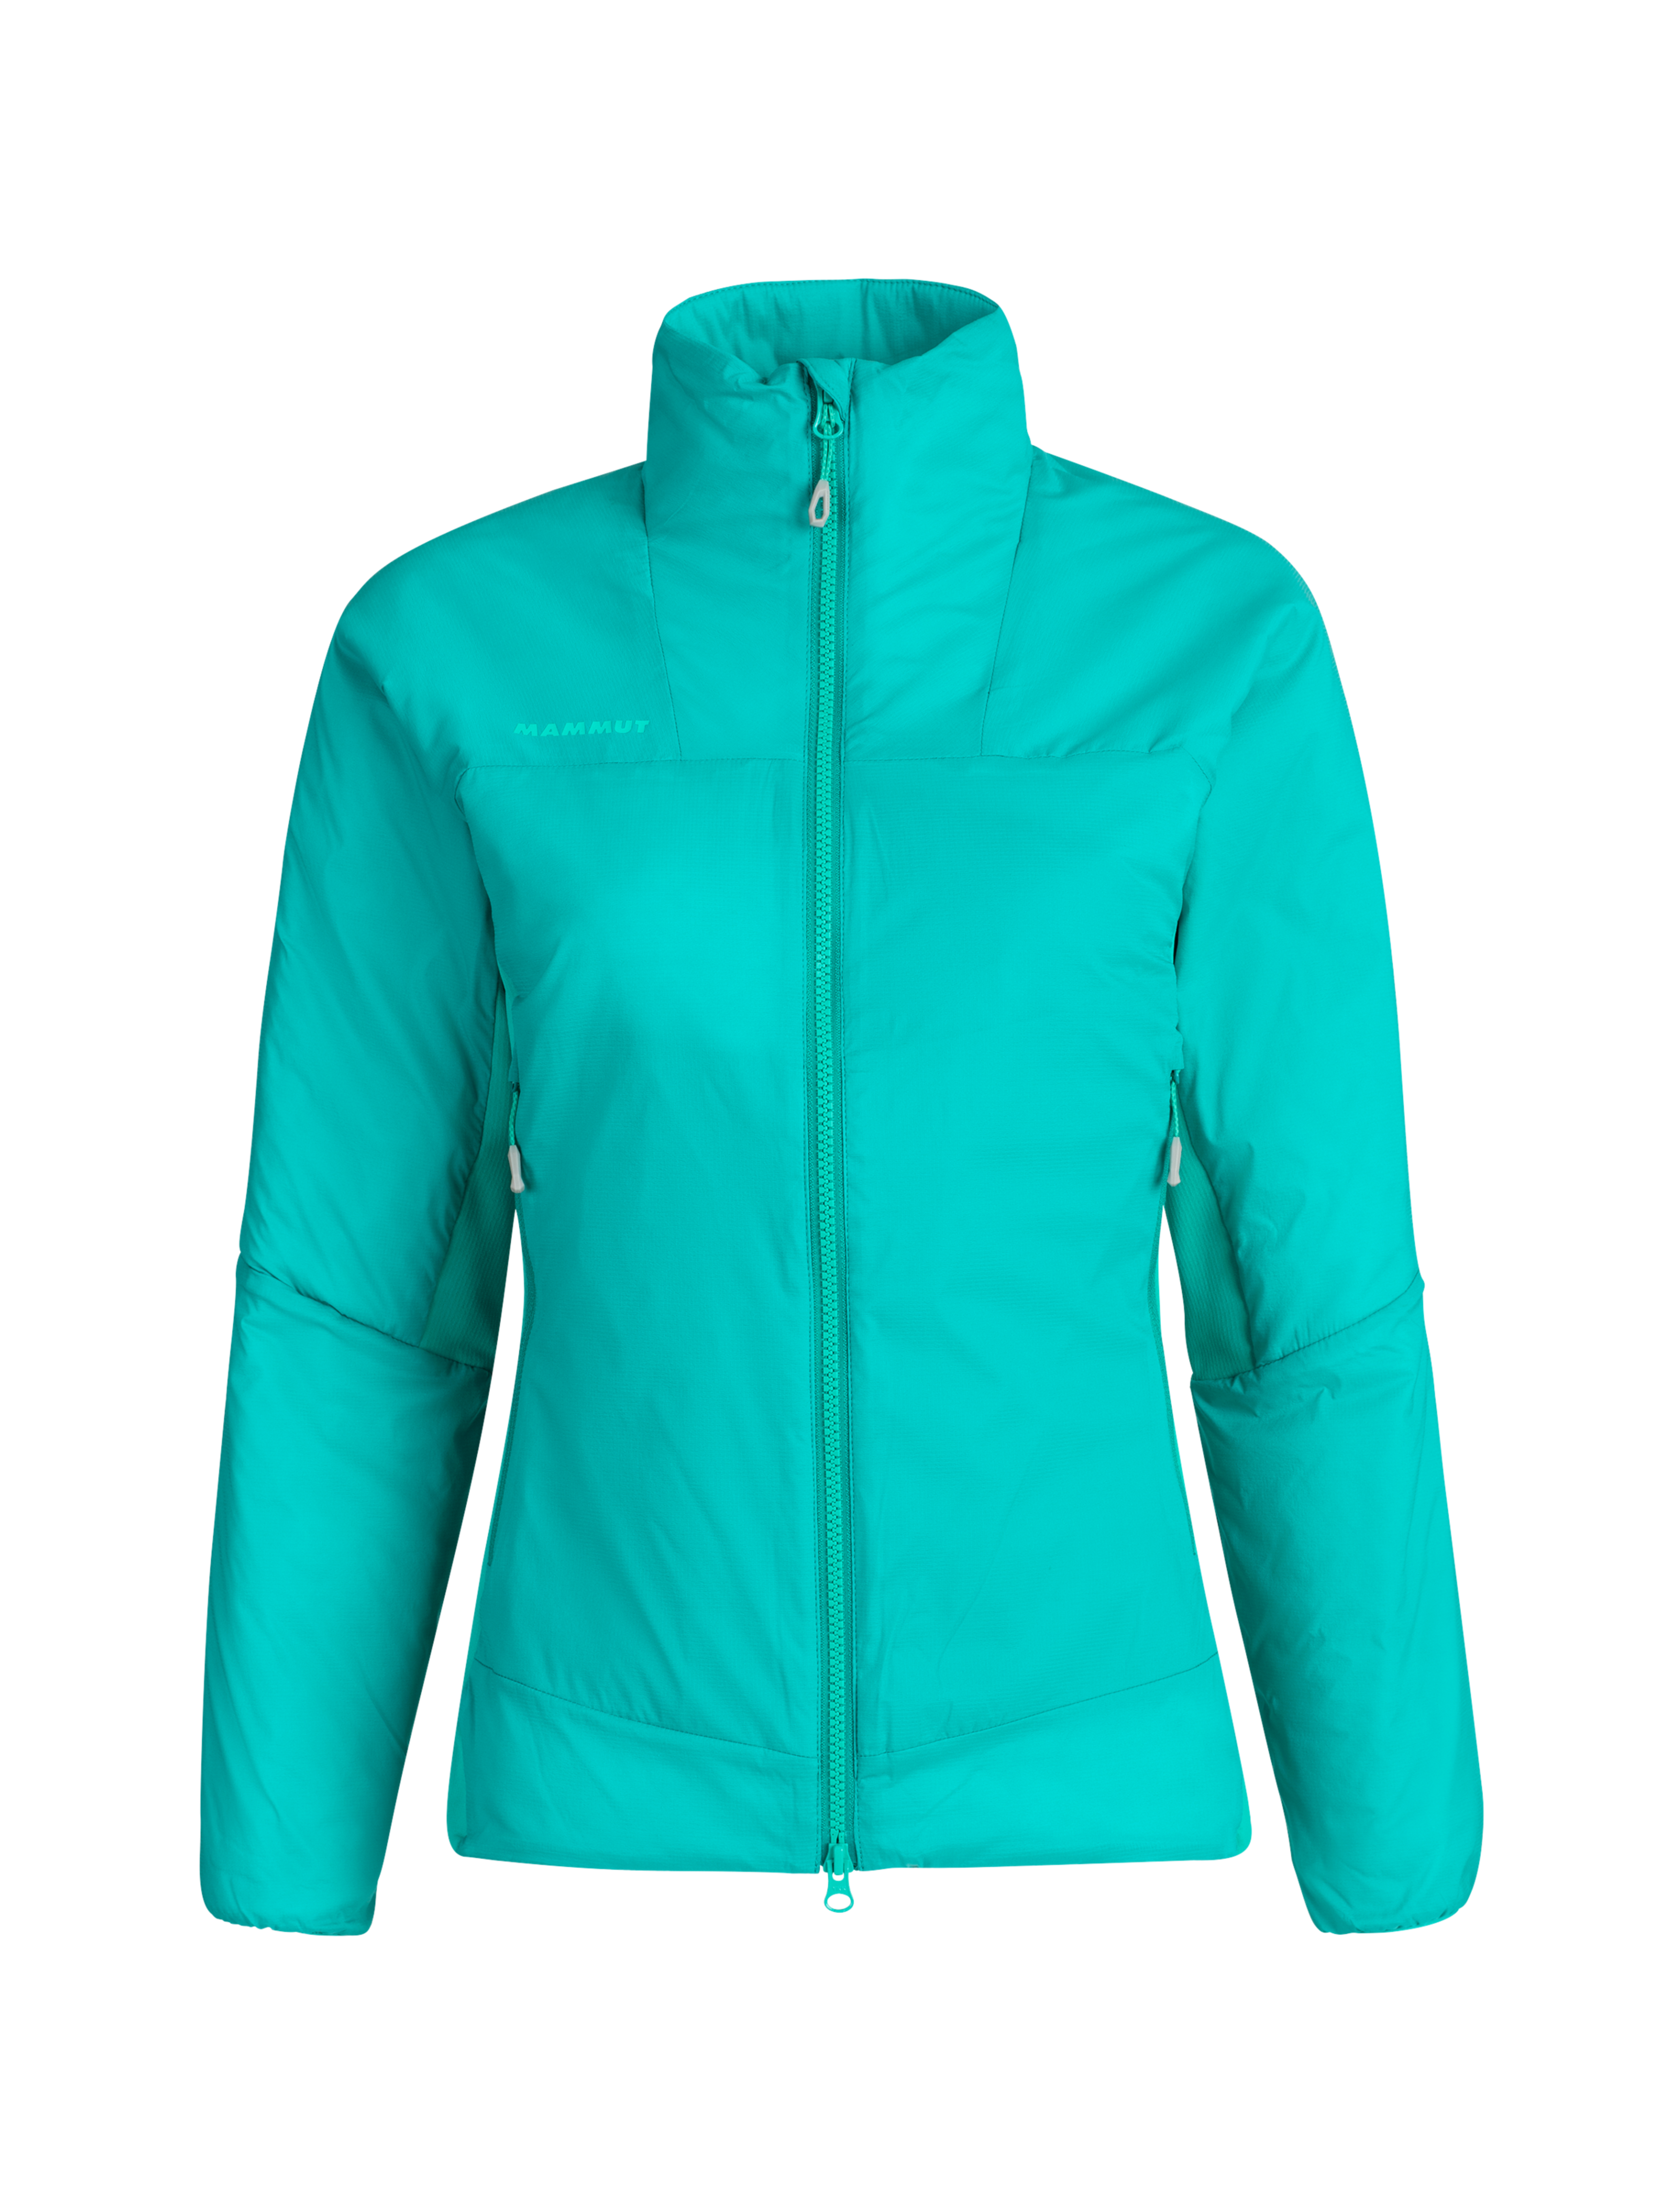 Rime IN Hybrid Flex Jacket Women product image